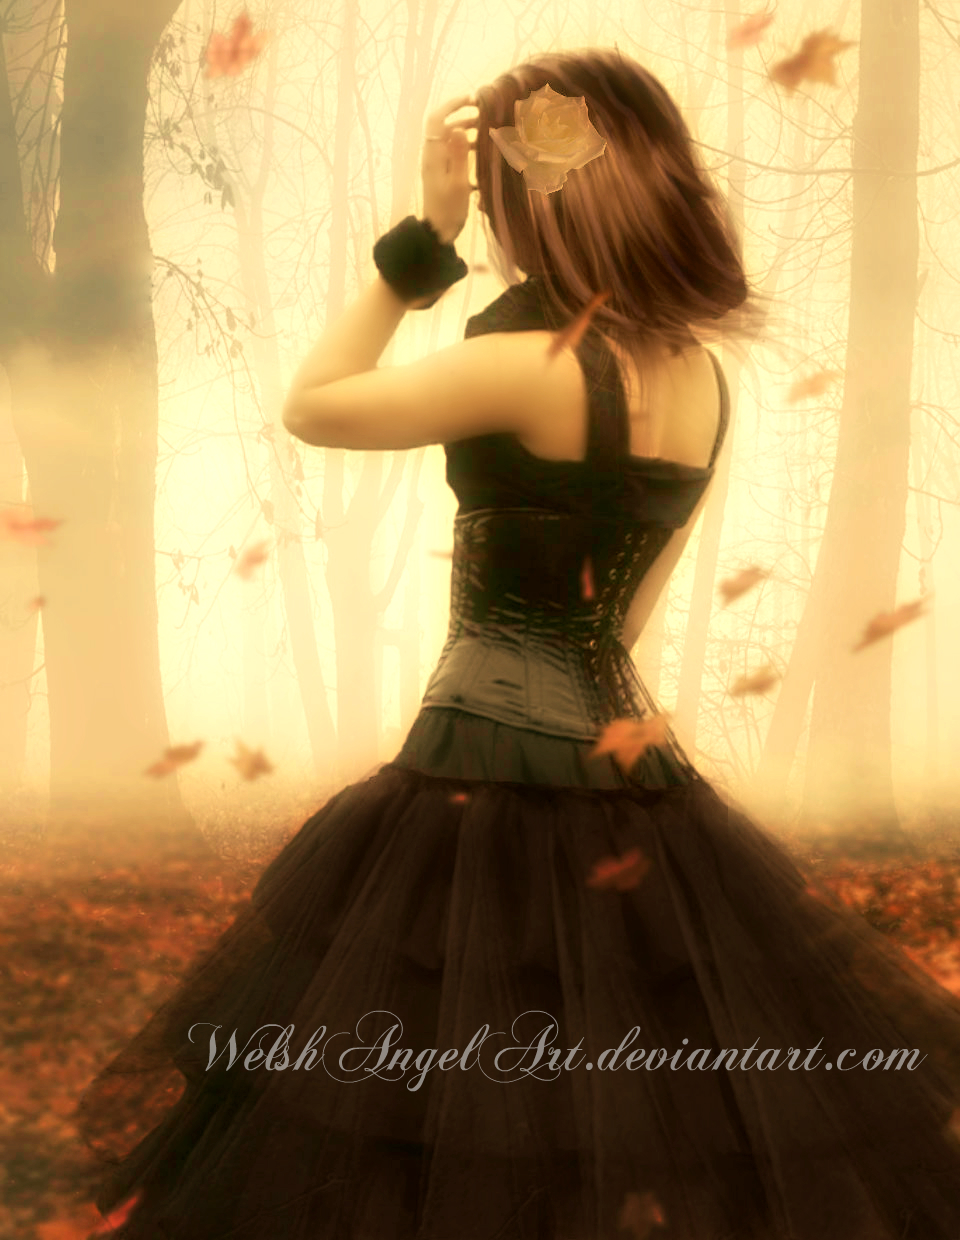 *autumn dreams* by BellaDreamArt